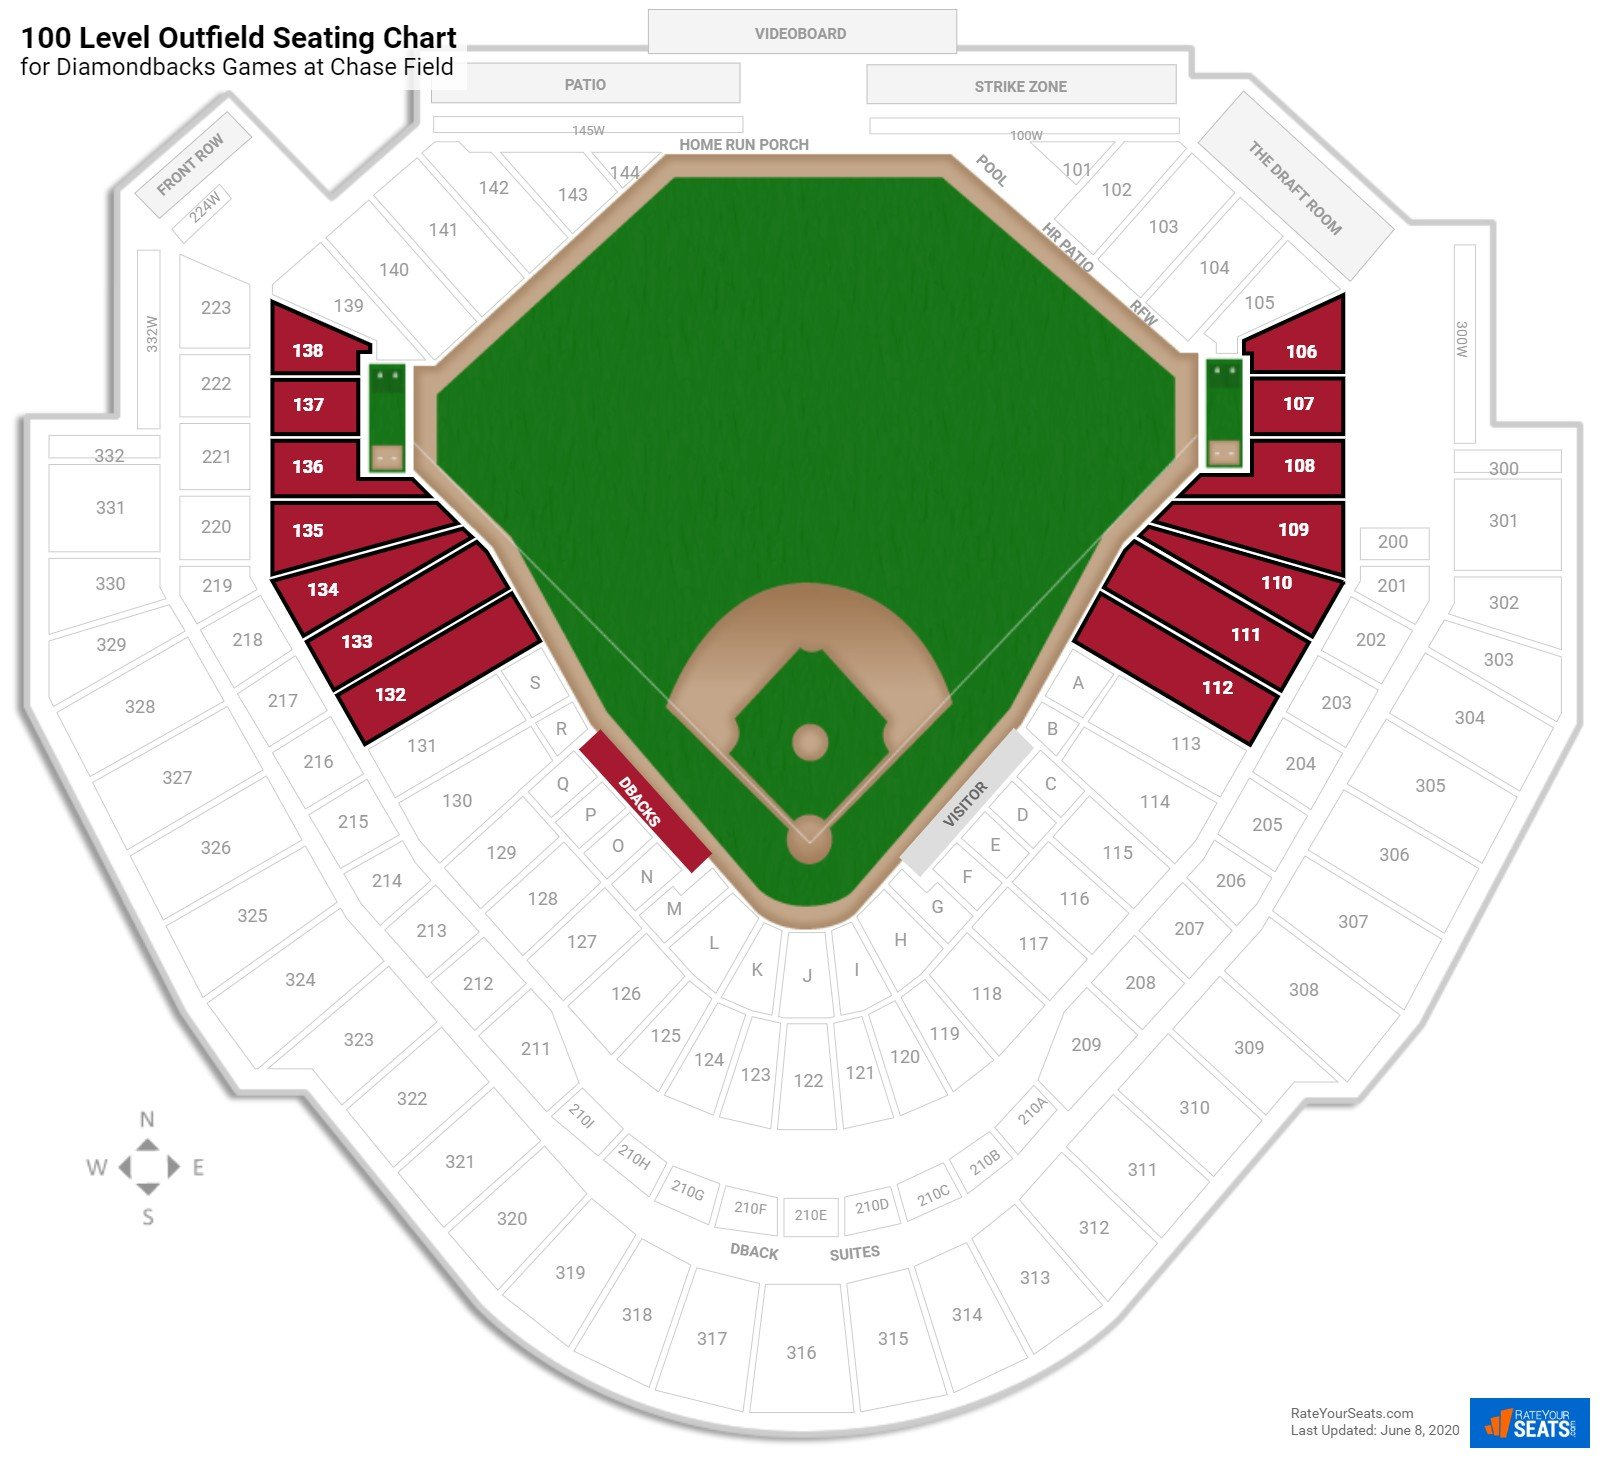 Chase Field 100 Level Outfield seating chart